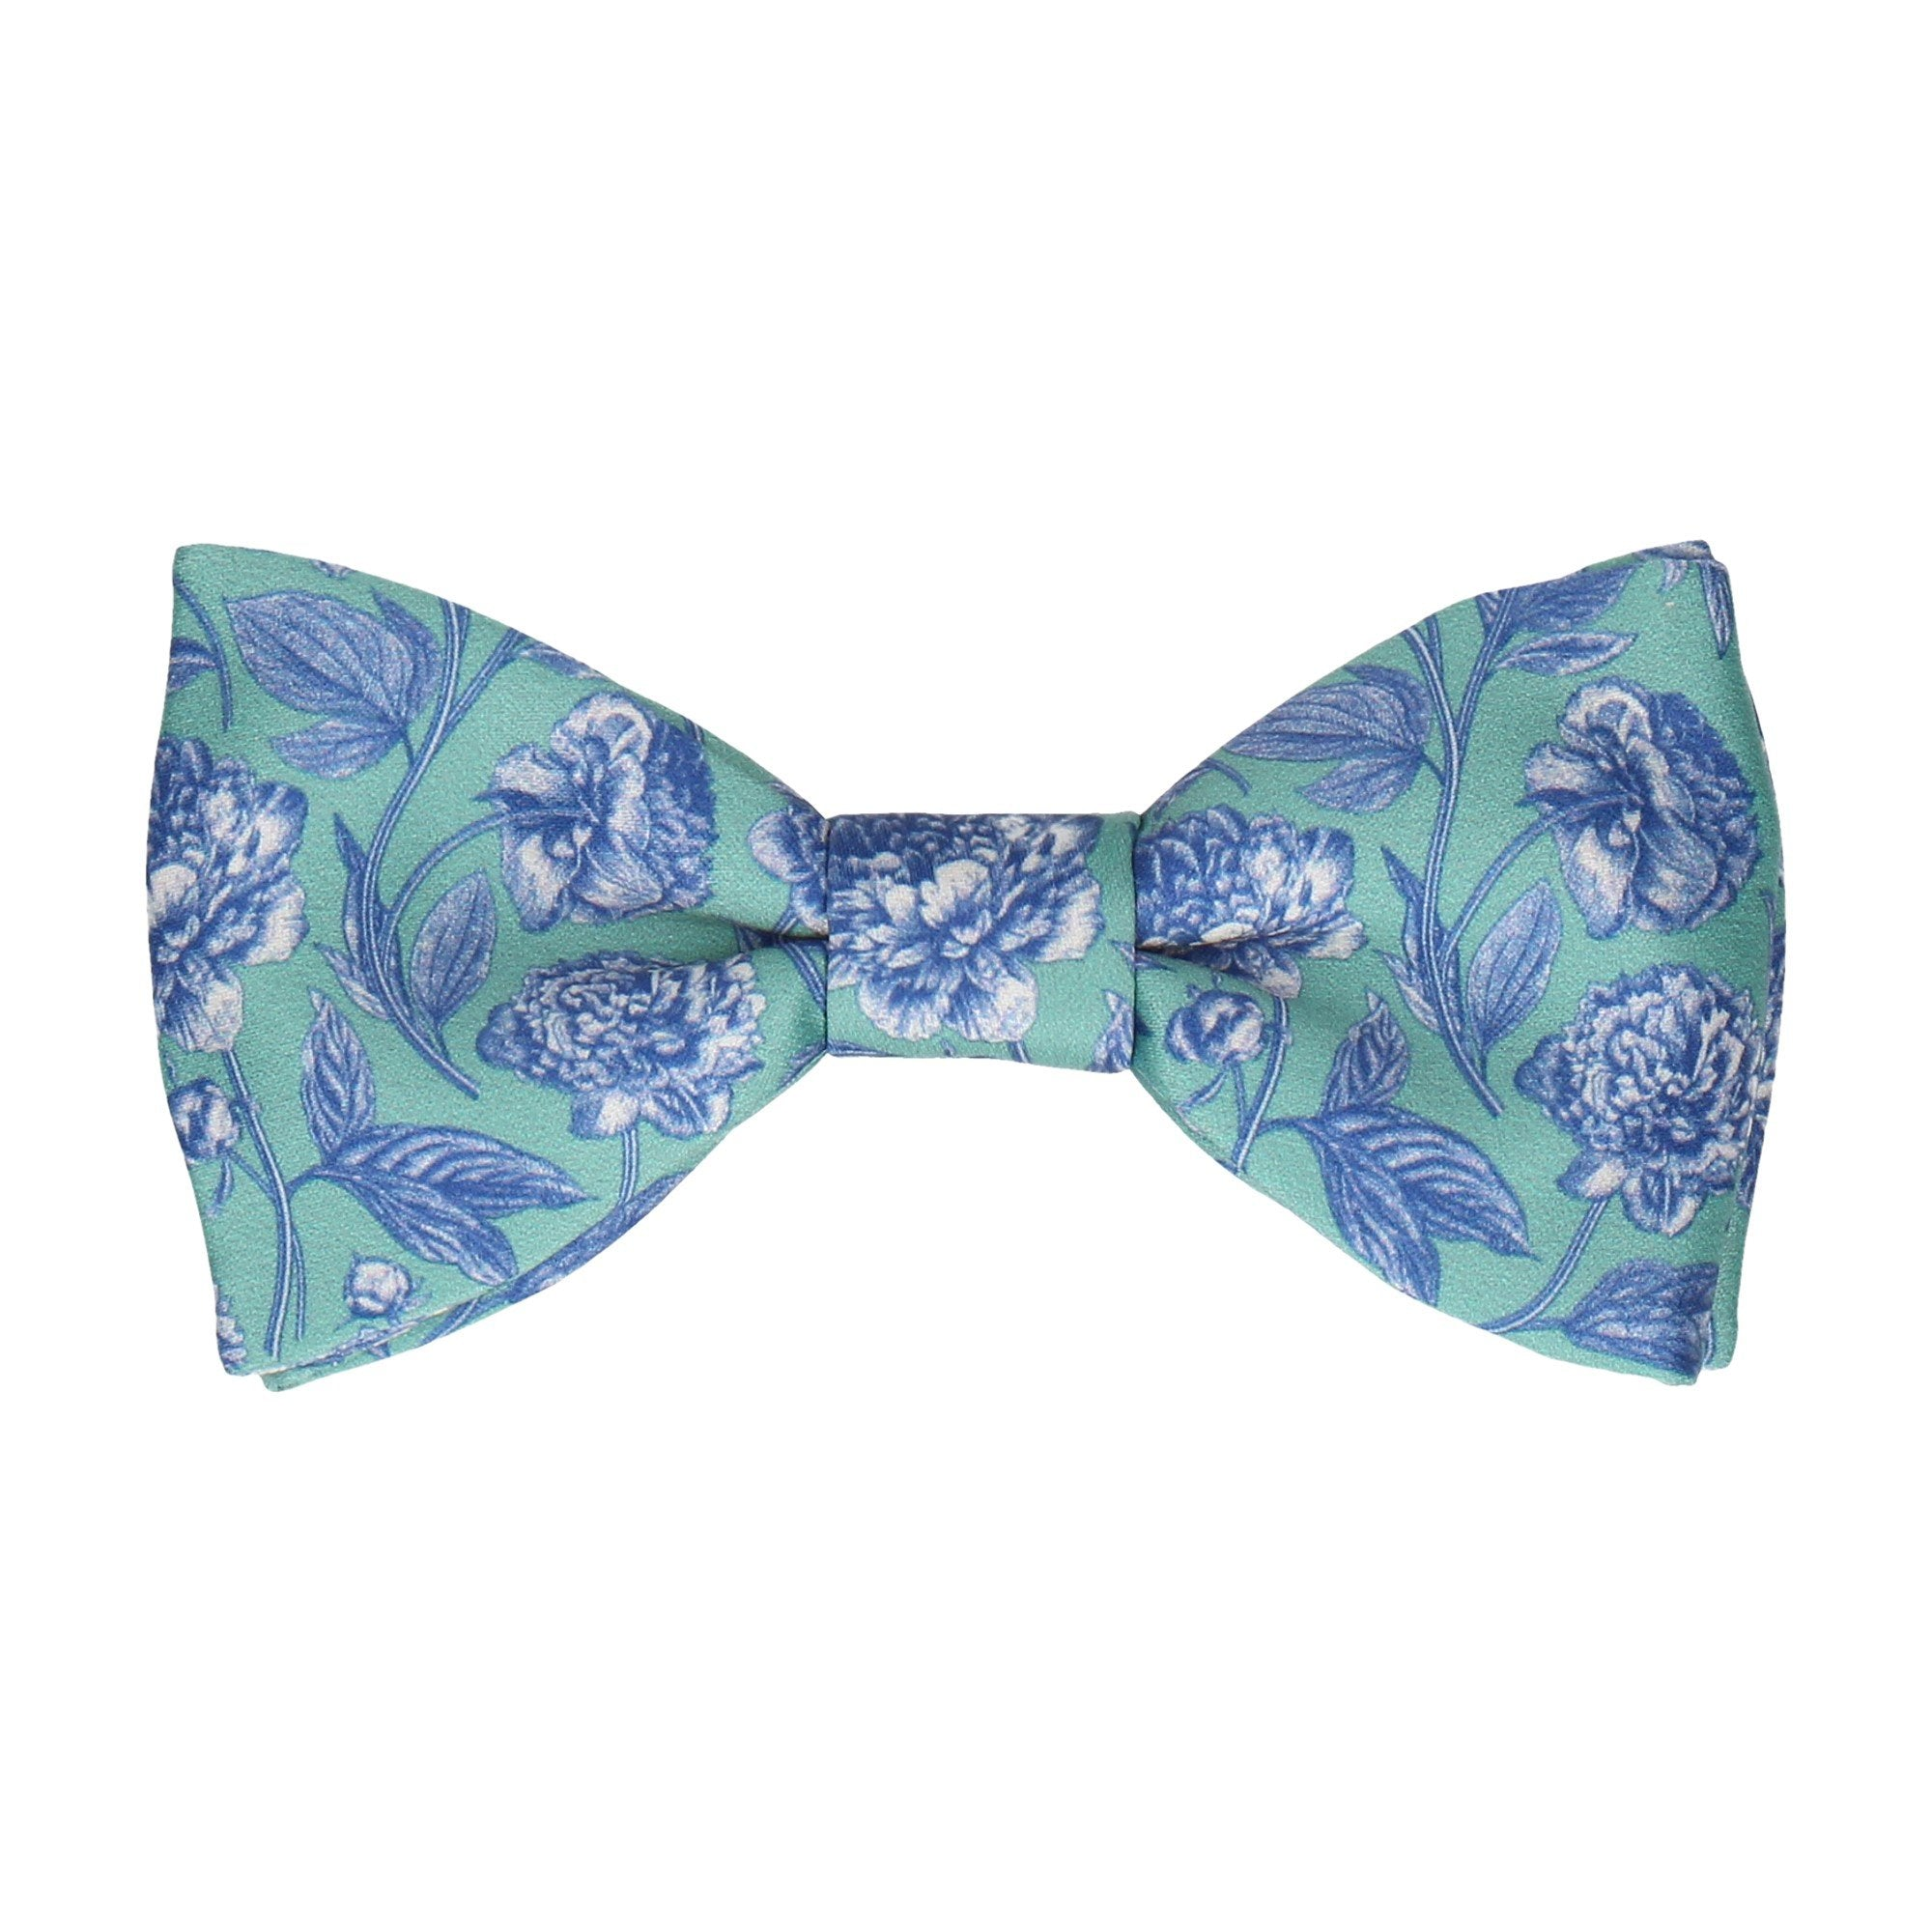 Green & Blue Floral Sketch Bow Tie